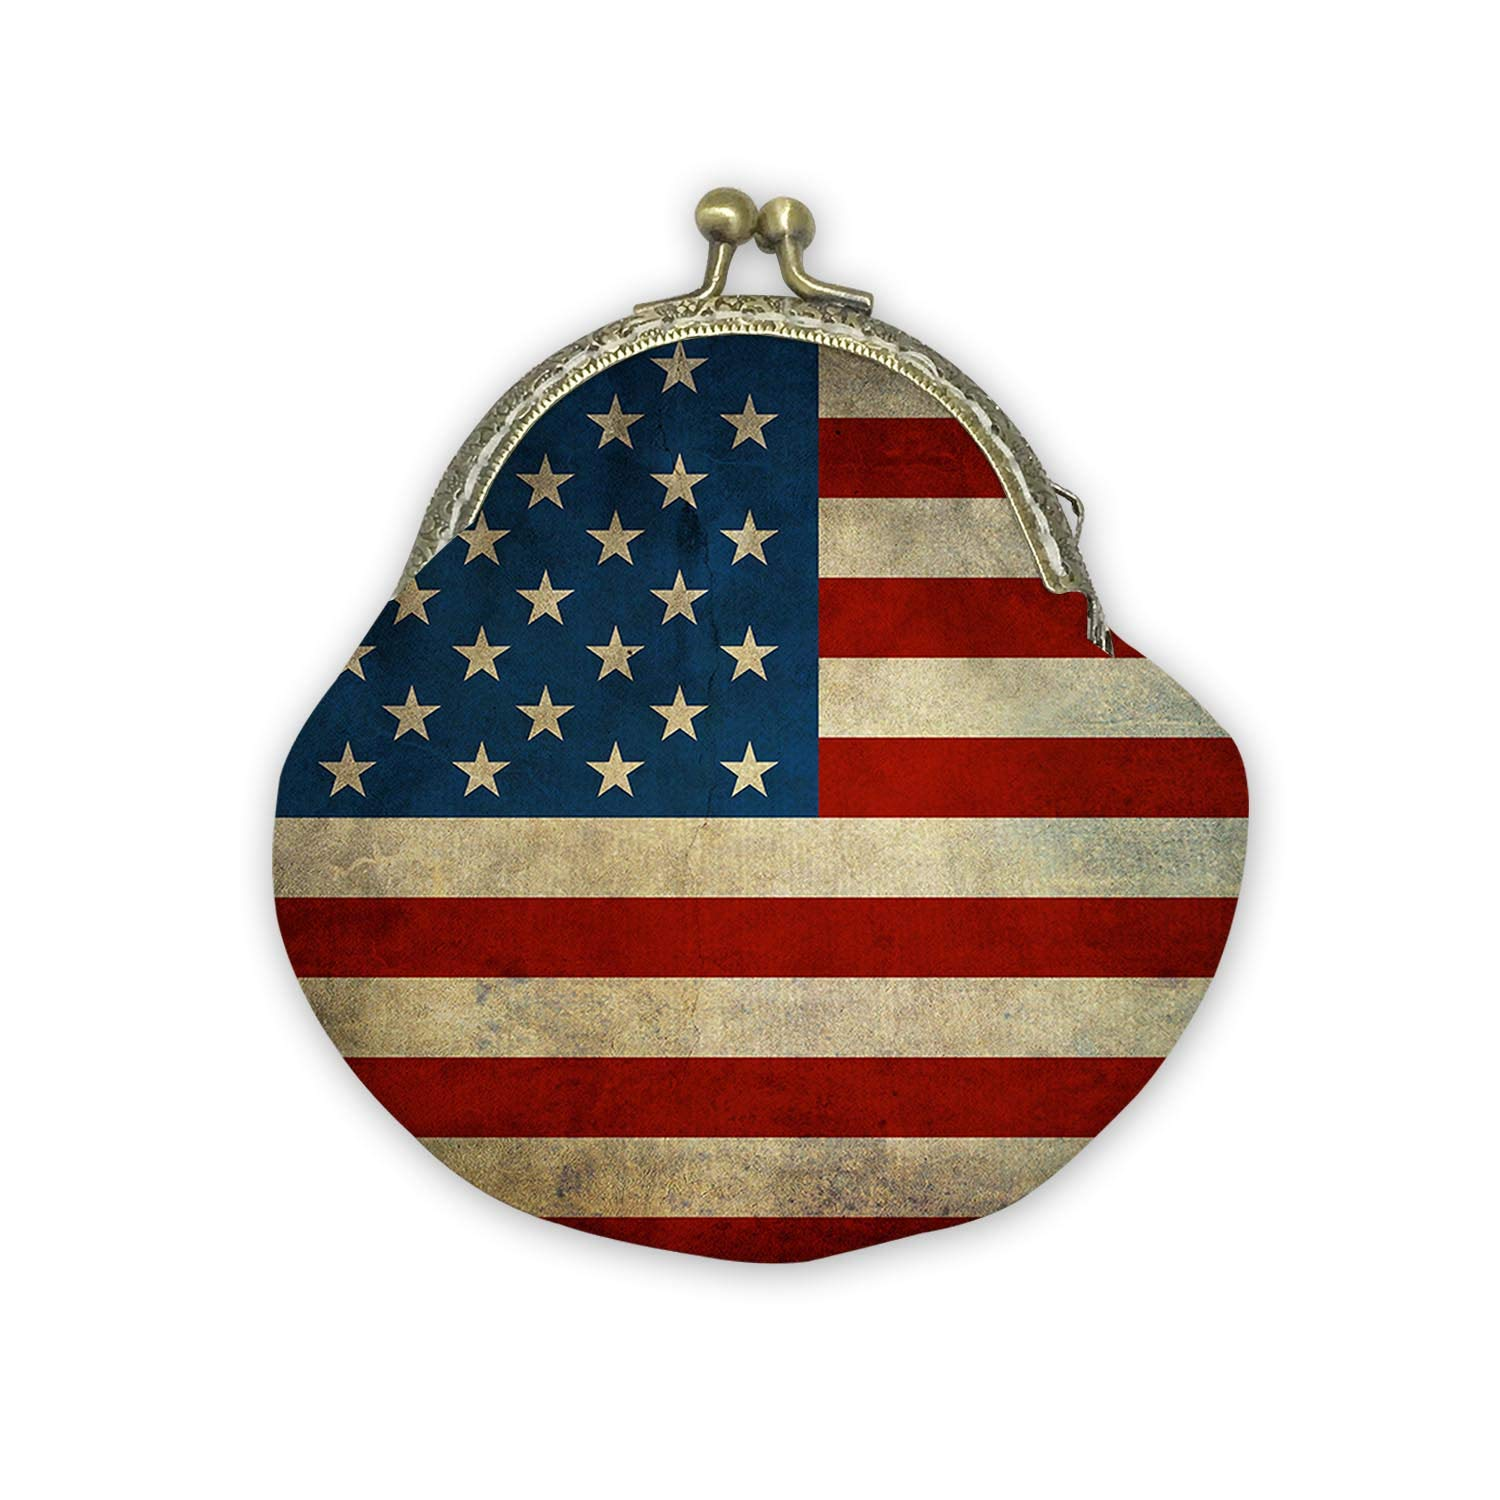 USA America Flag Mouth Gold Bag Canvas Coin Purse Cash Bag Small Purse Wallets Mini Money Bag Change Pouch Key Holder Double Sides Printing